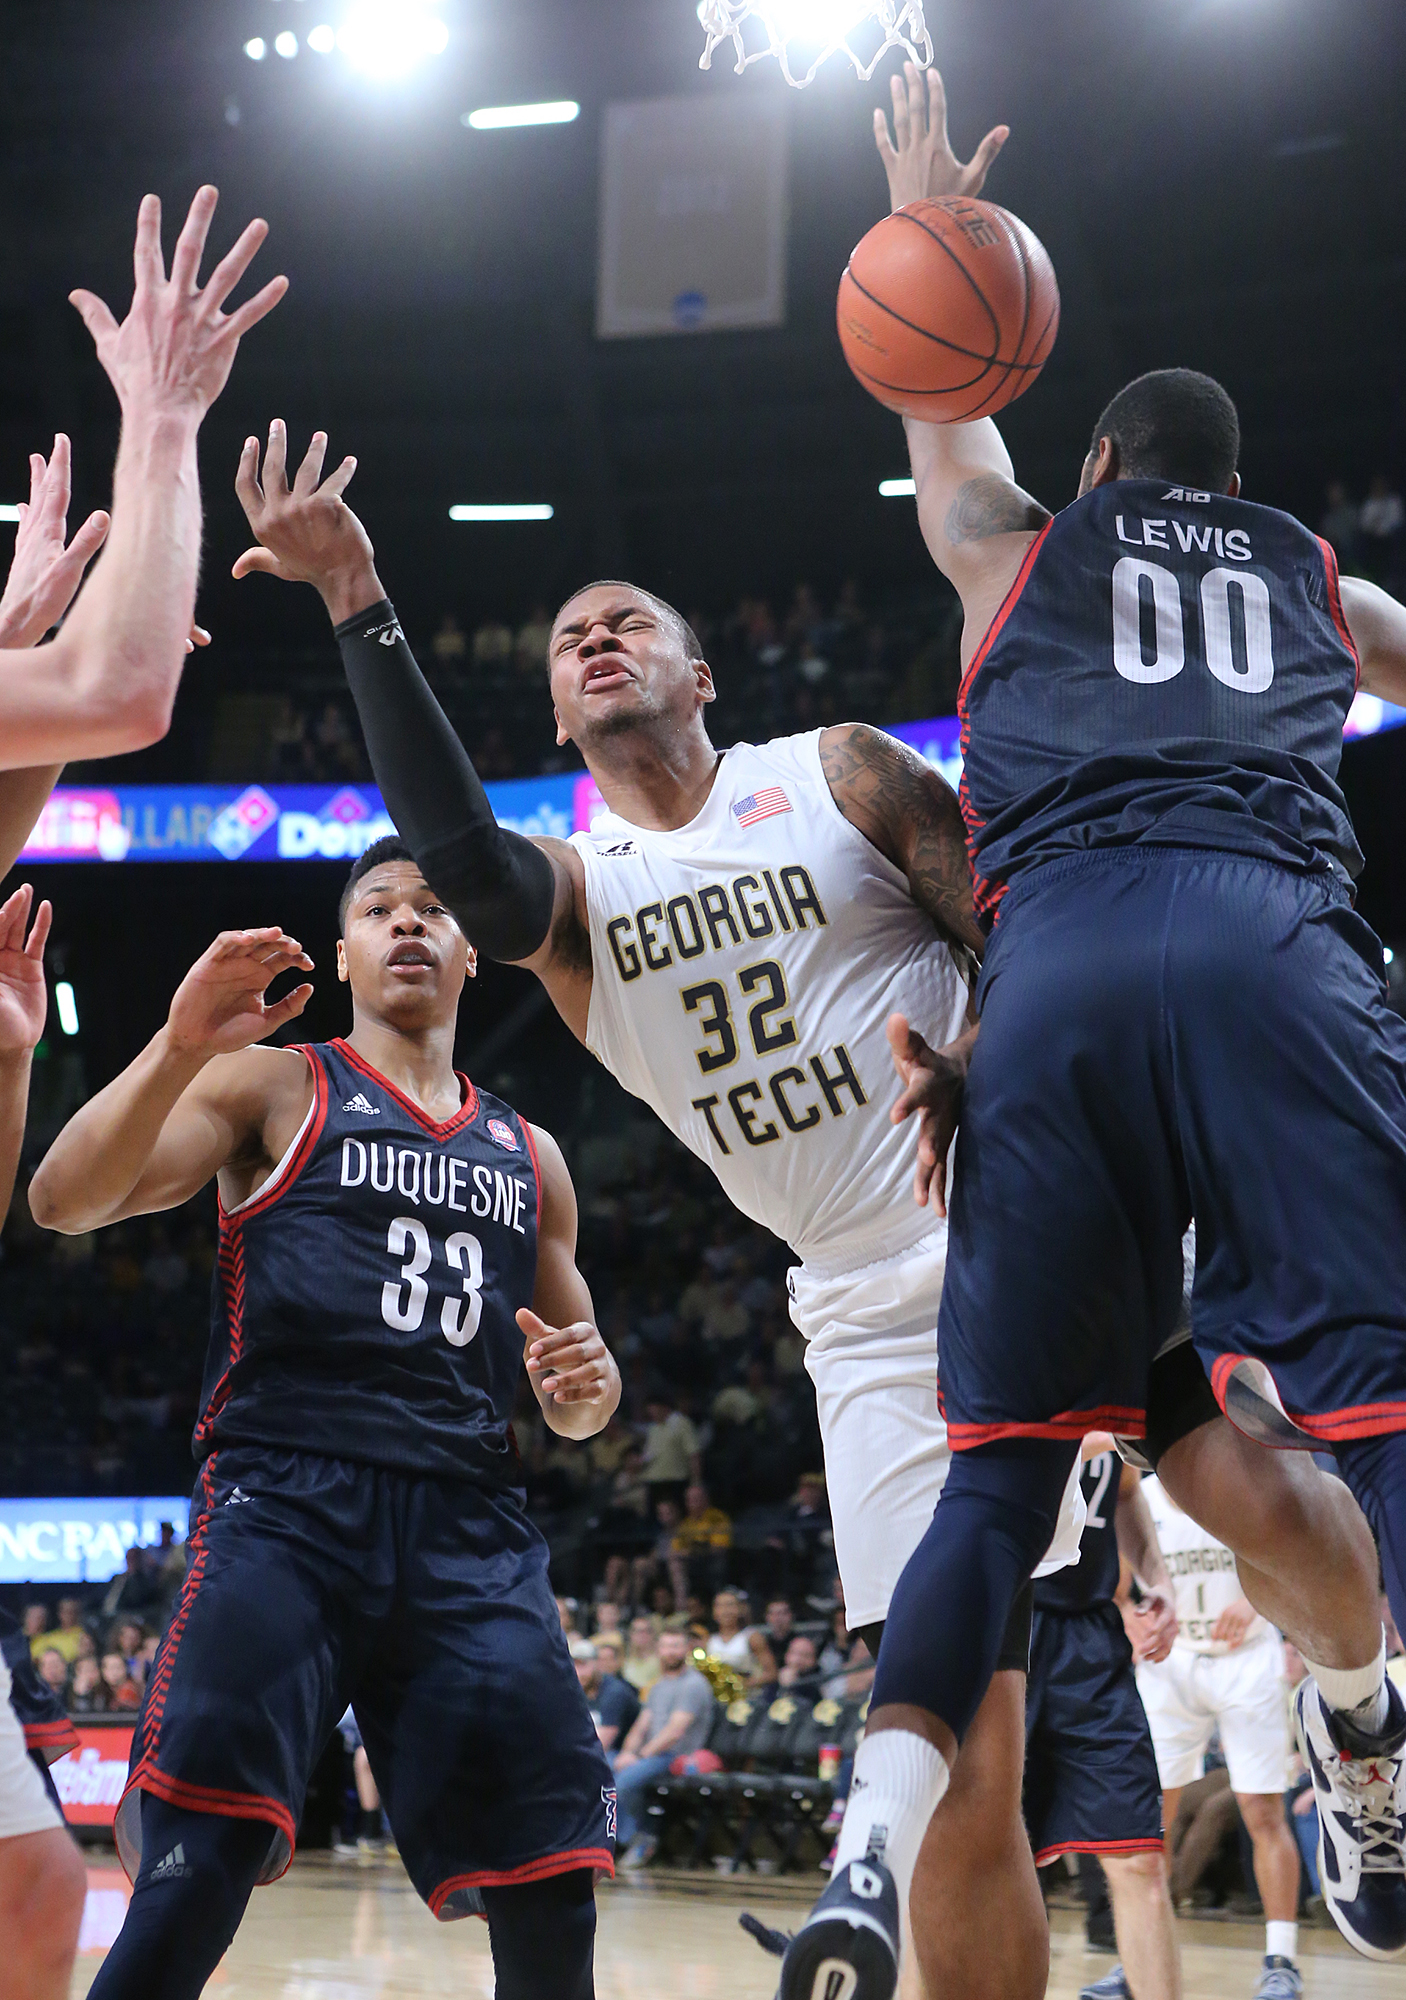 Duquesne center Darius Lewis defends against Georgia Tech forward Nick Jacobs during an NCAA college basketball game on Tuesday, Dec. 29, 2015, in Atlanta. (Curtis Compton/Atlanta Journal-Constitution via AP)  MARIETTA DAILY OUT; GWINNETT DAILY POST OUT;